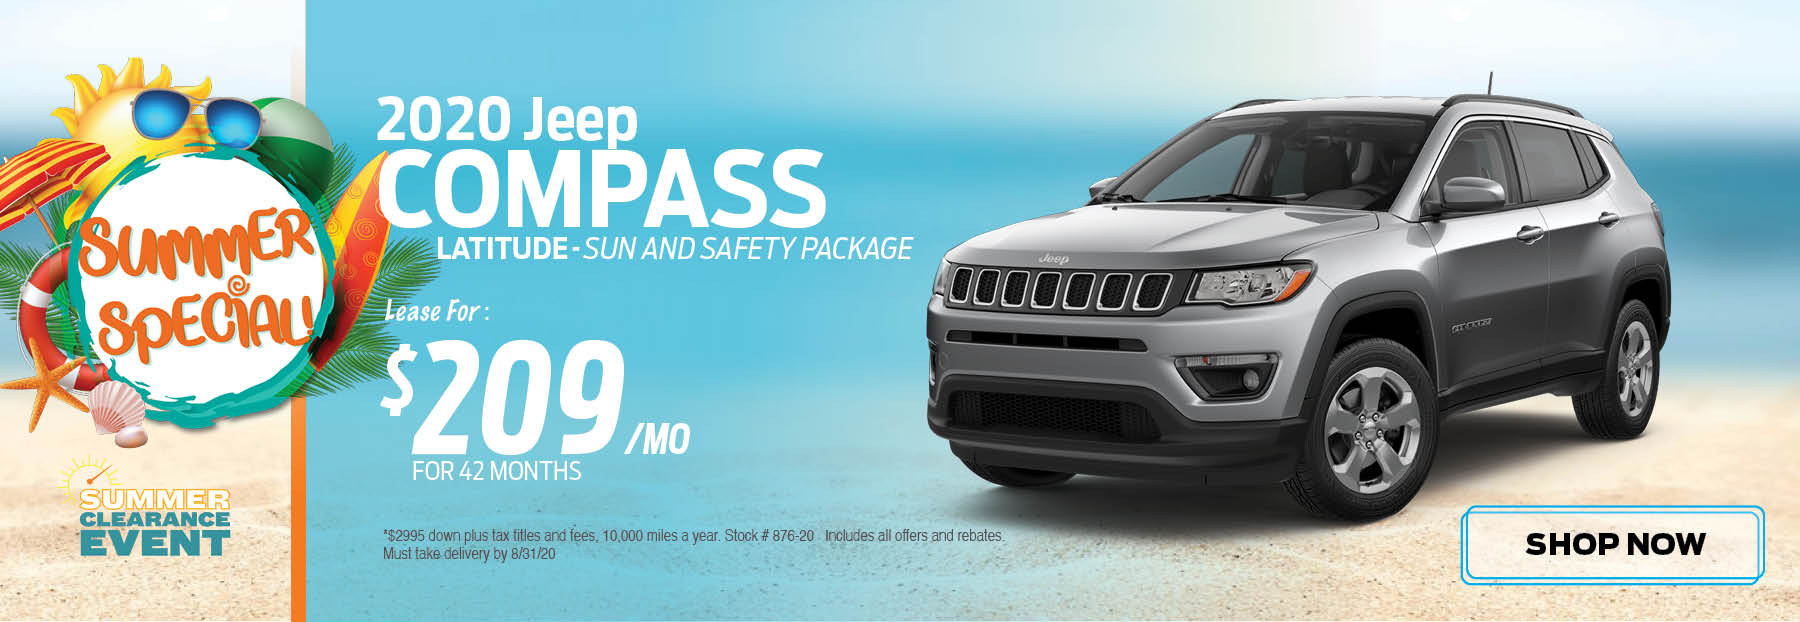 2020 Jeep Compass Special